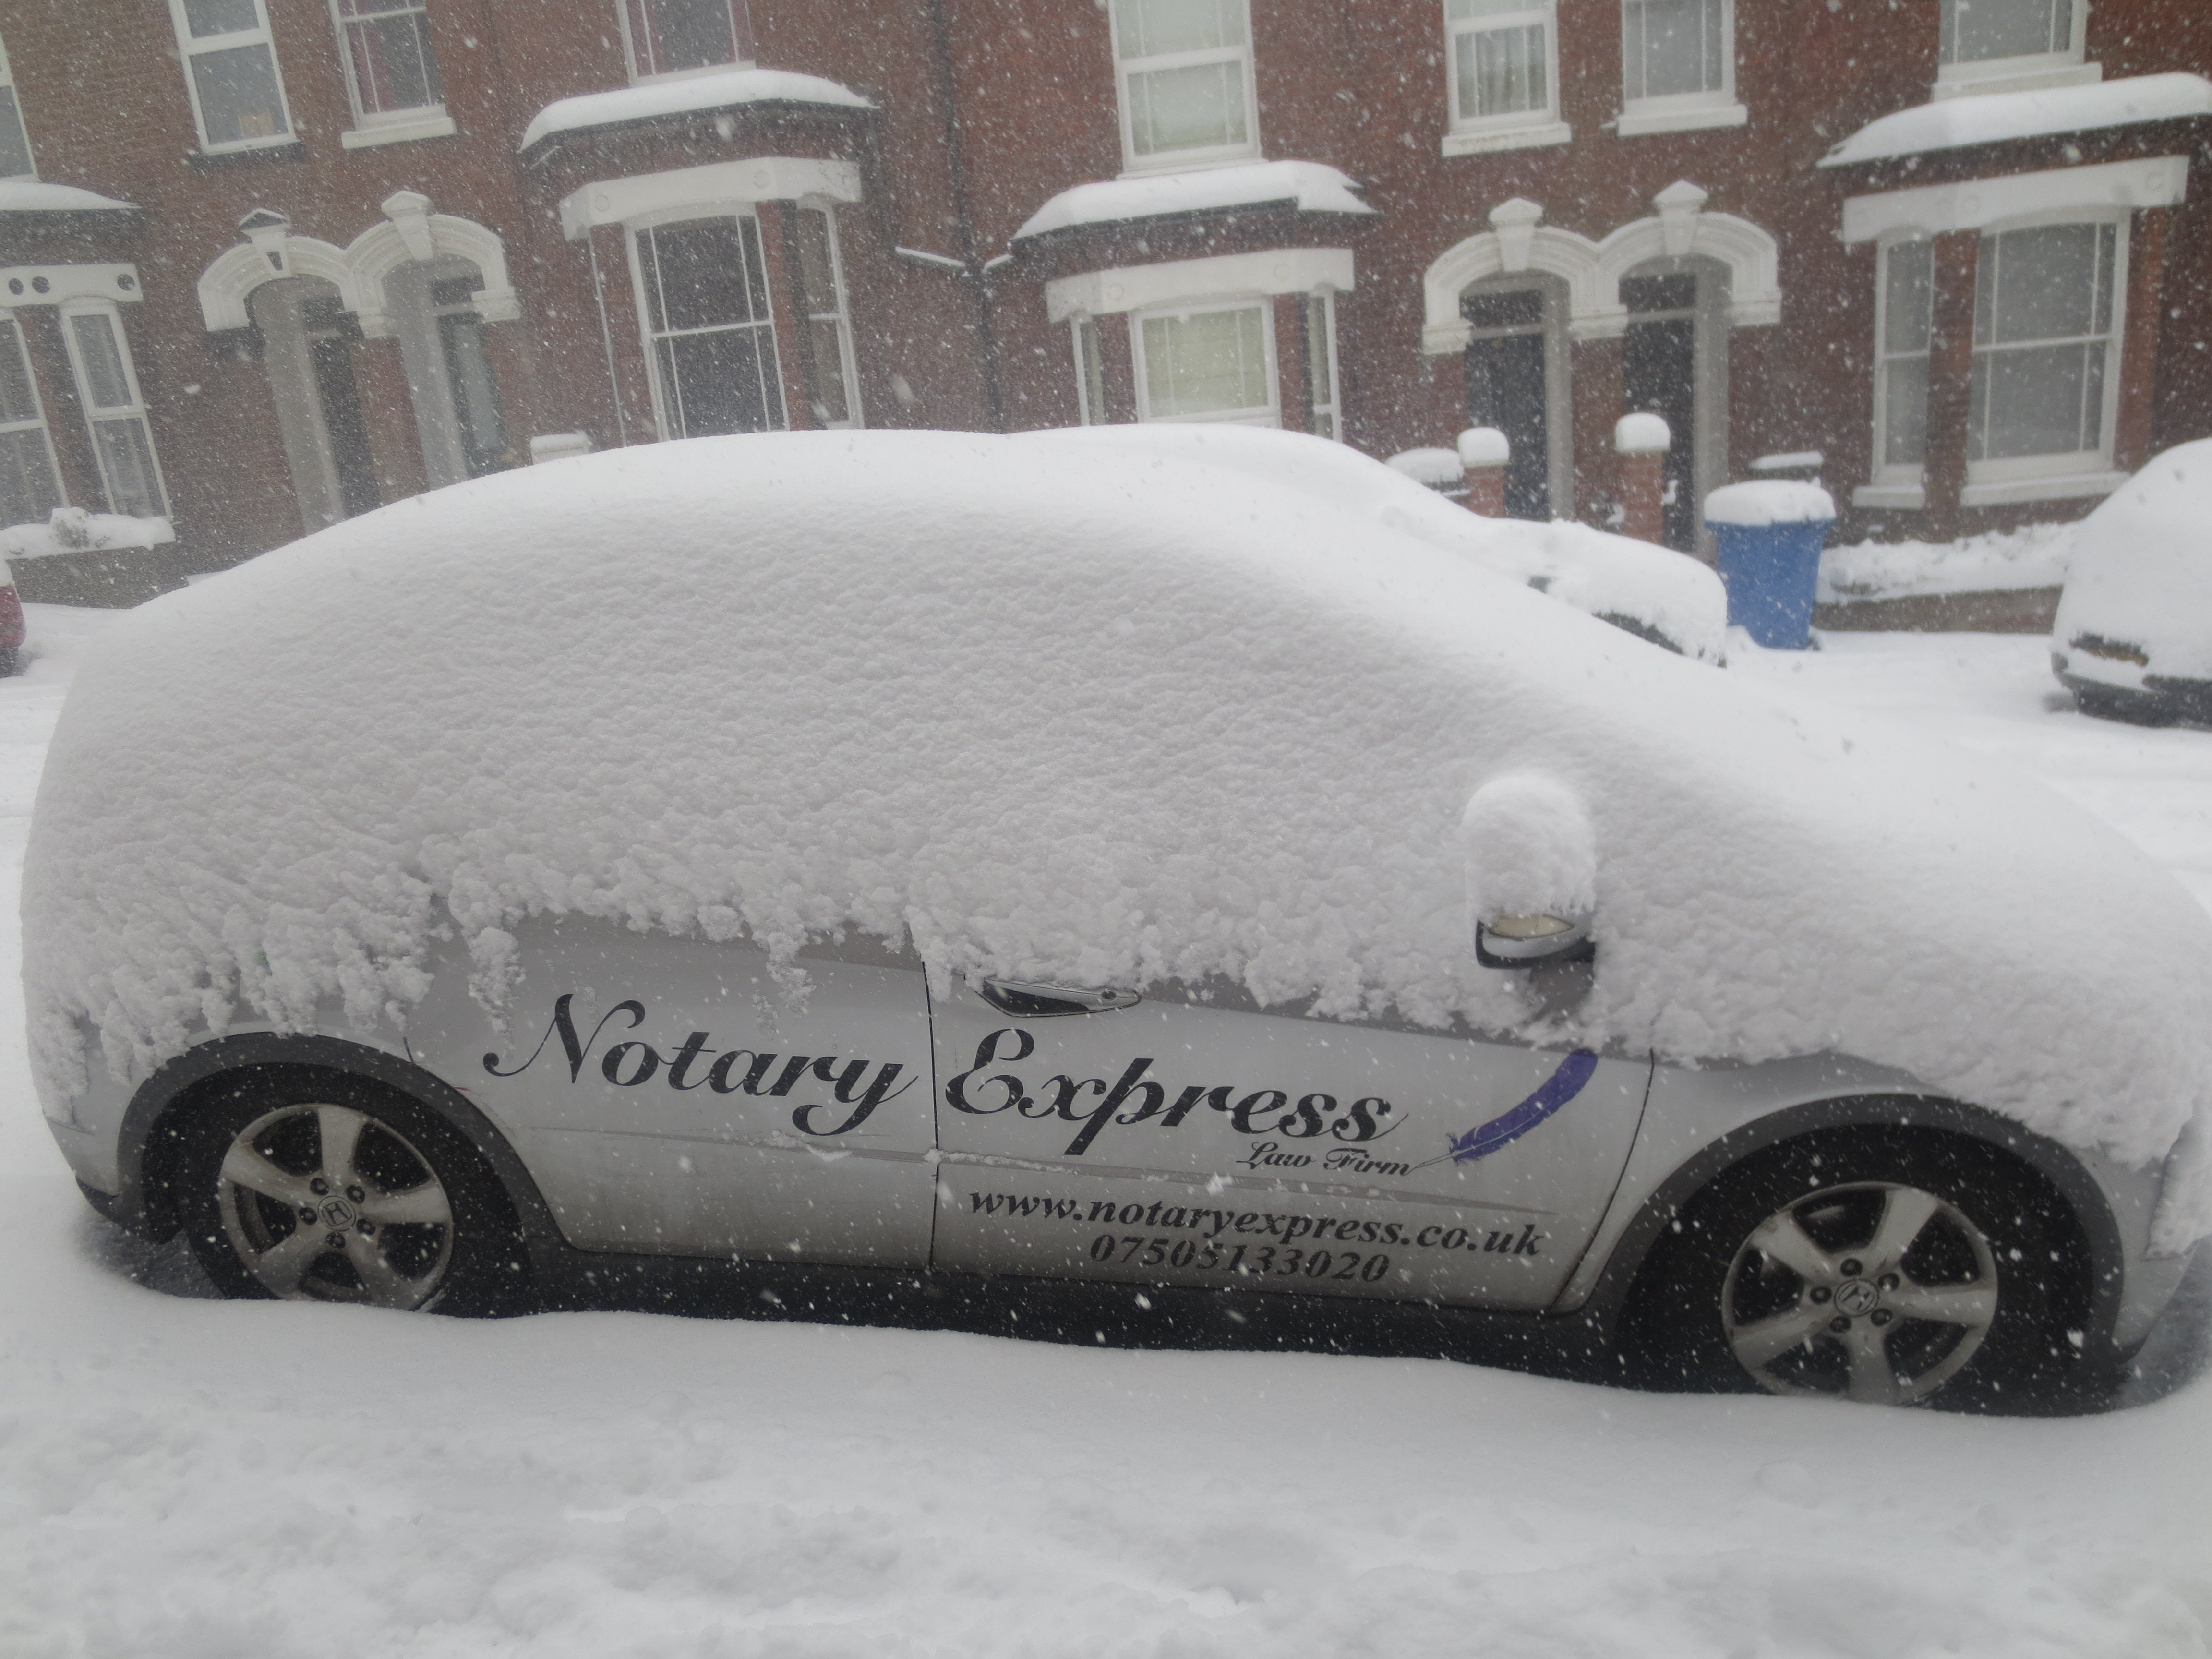 Notary Express car in snow